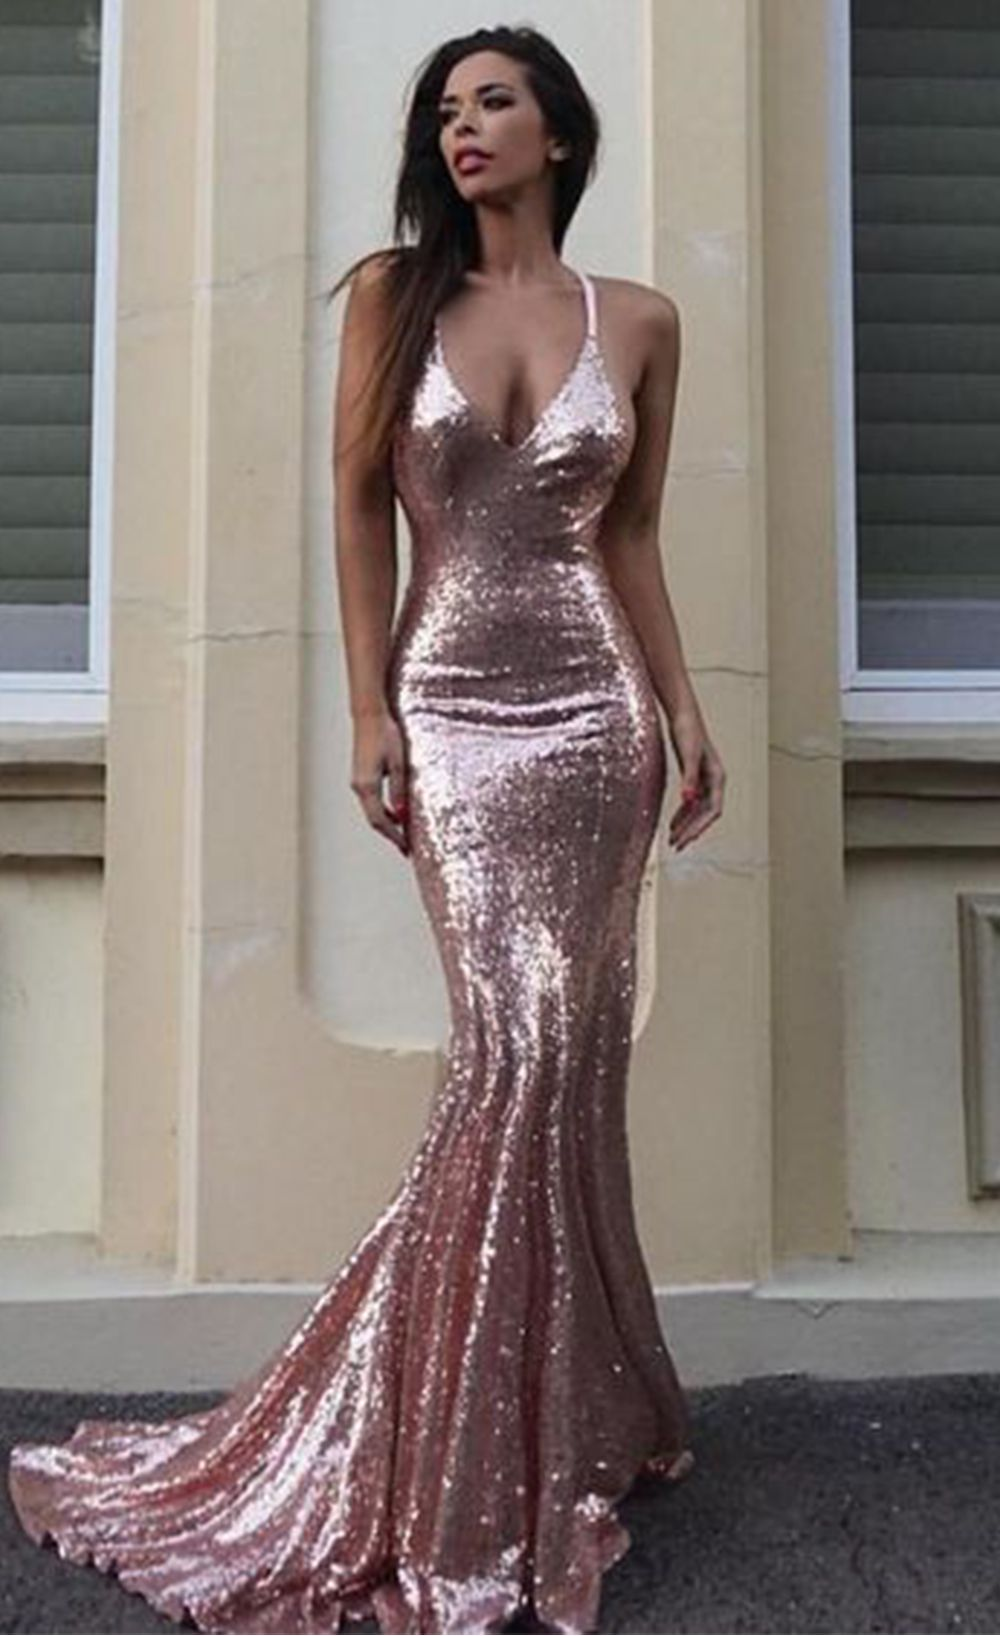 89.99 Sexy Halter V-neck Party Sequin Maxi Dress  54c173430